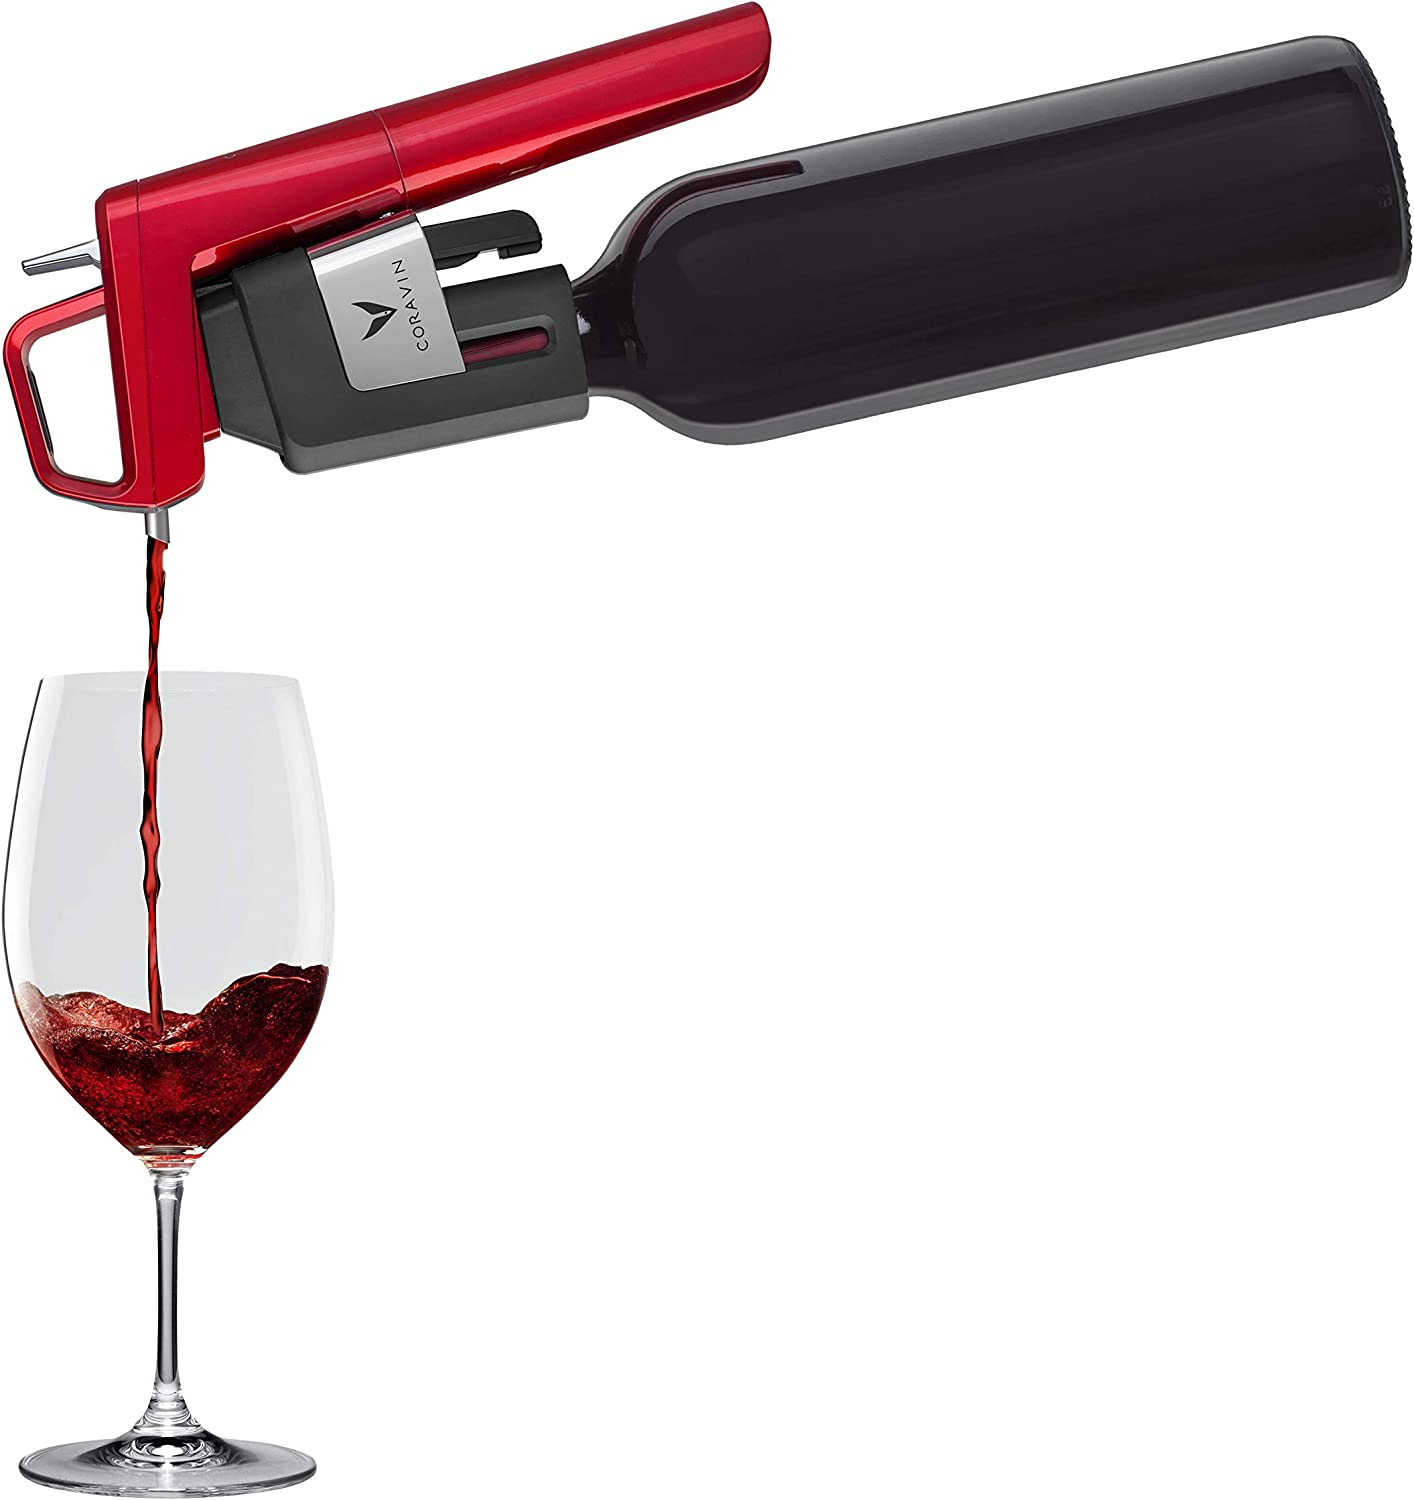 Model Six Core Wine Preservation System Silver Coravin 2 Gas Capsules and Screw Cap